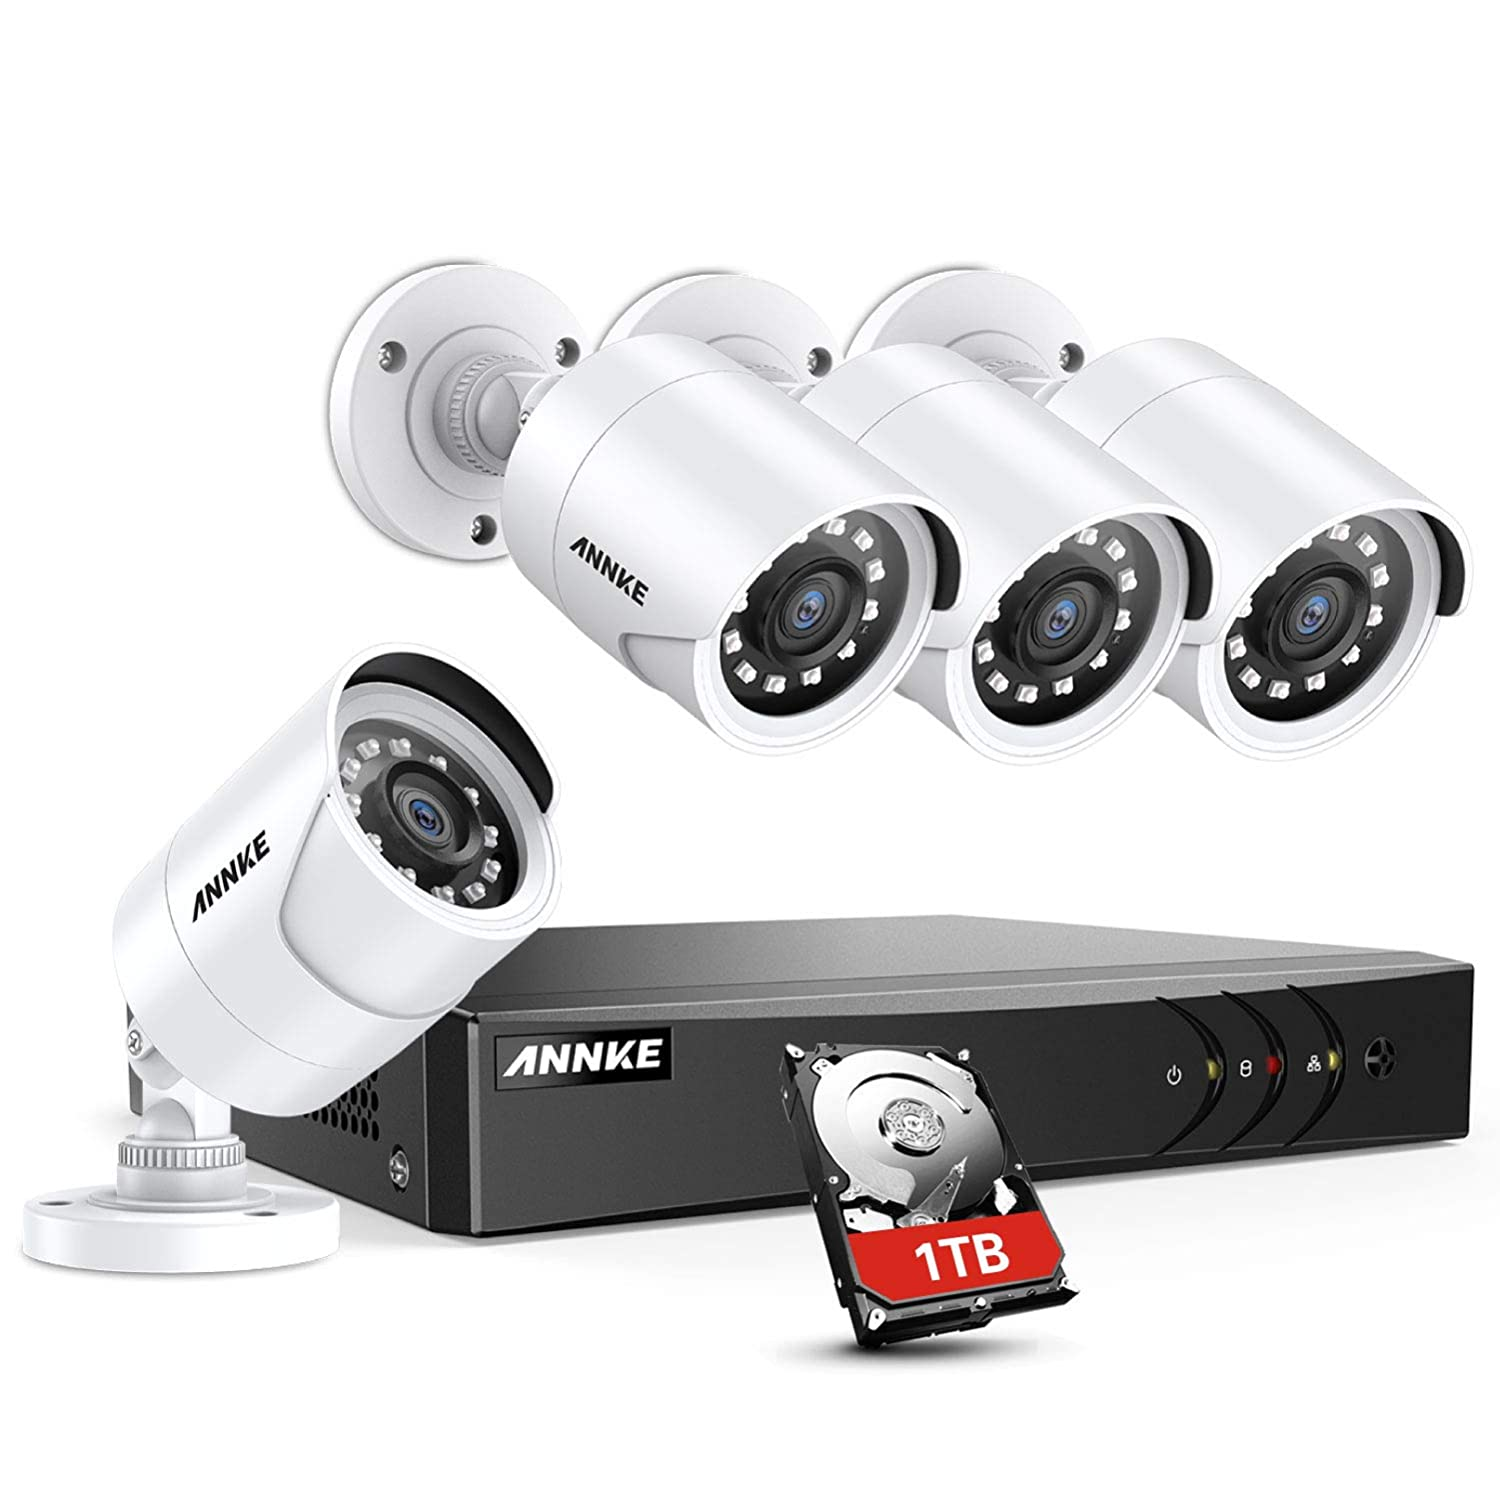 ANNKE 8 Channel Security Camera System 5-in-1 1080P lite H.264 Wired DVR with 1TB Surveillance Hard Disk Drive and 4X 1080P HD Weatherproof Bullet CCTV Cameras with IR-cut Night Vision LEDs